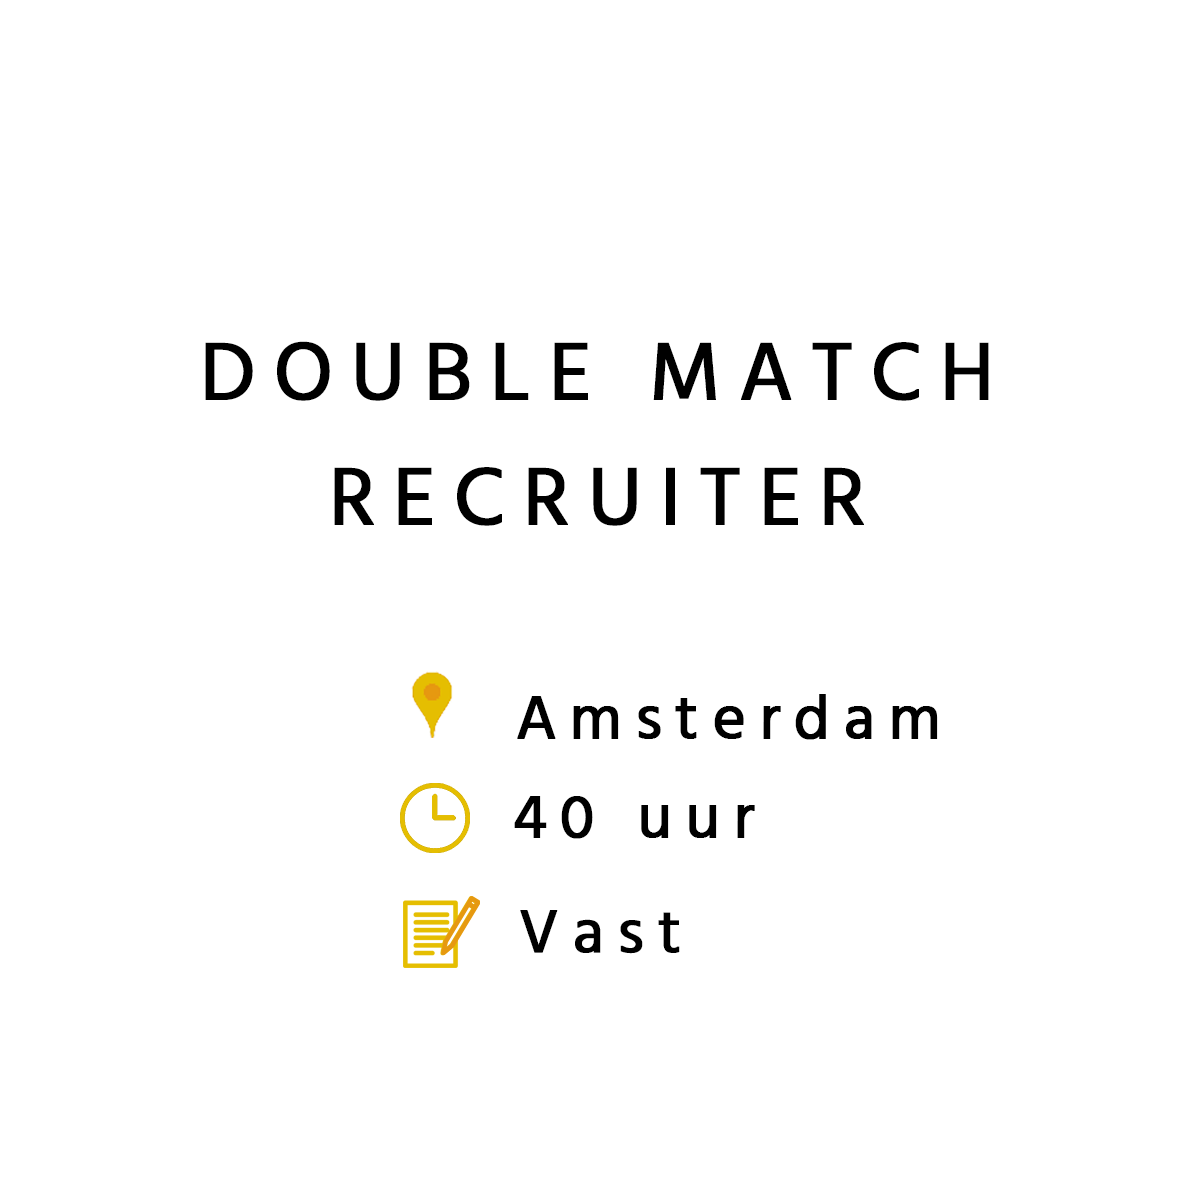 Double Match Recruiter